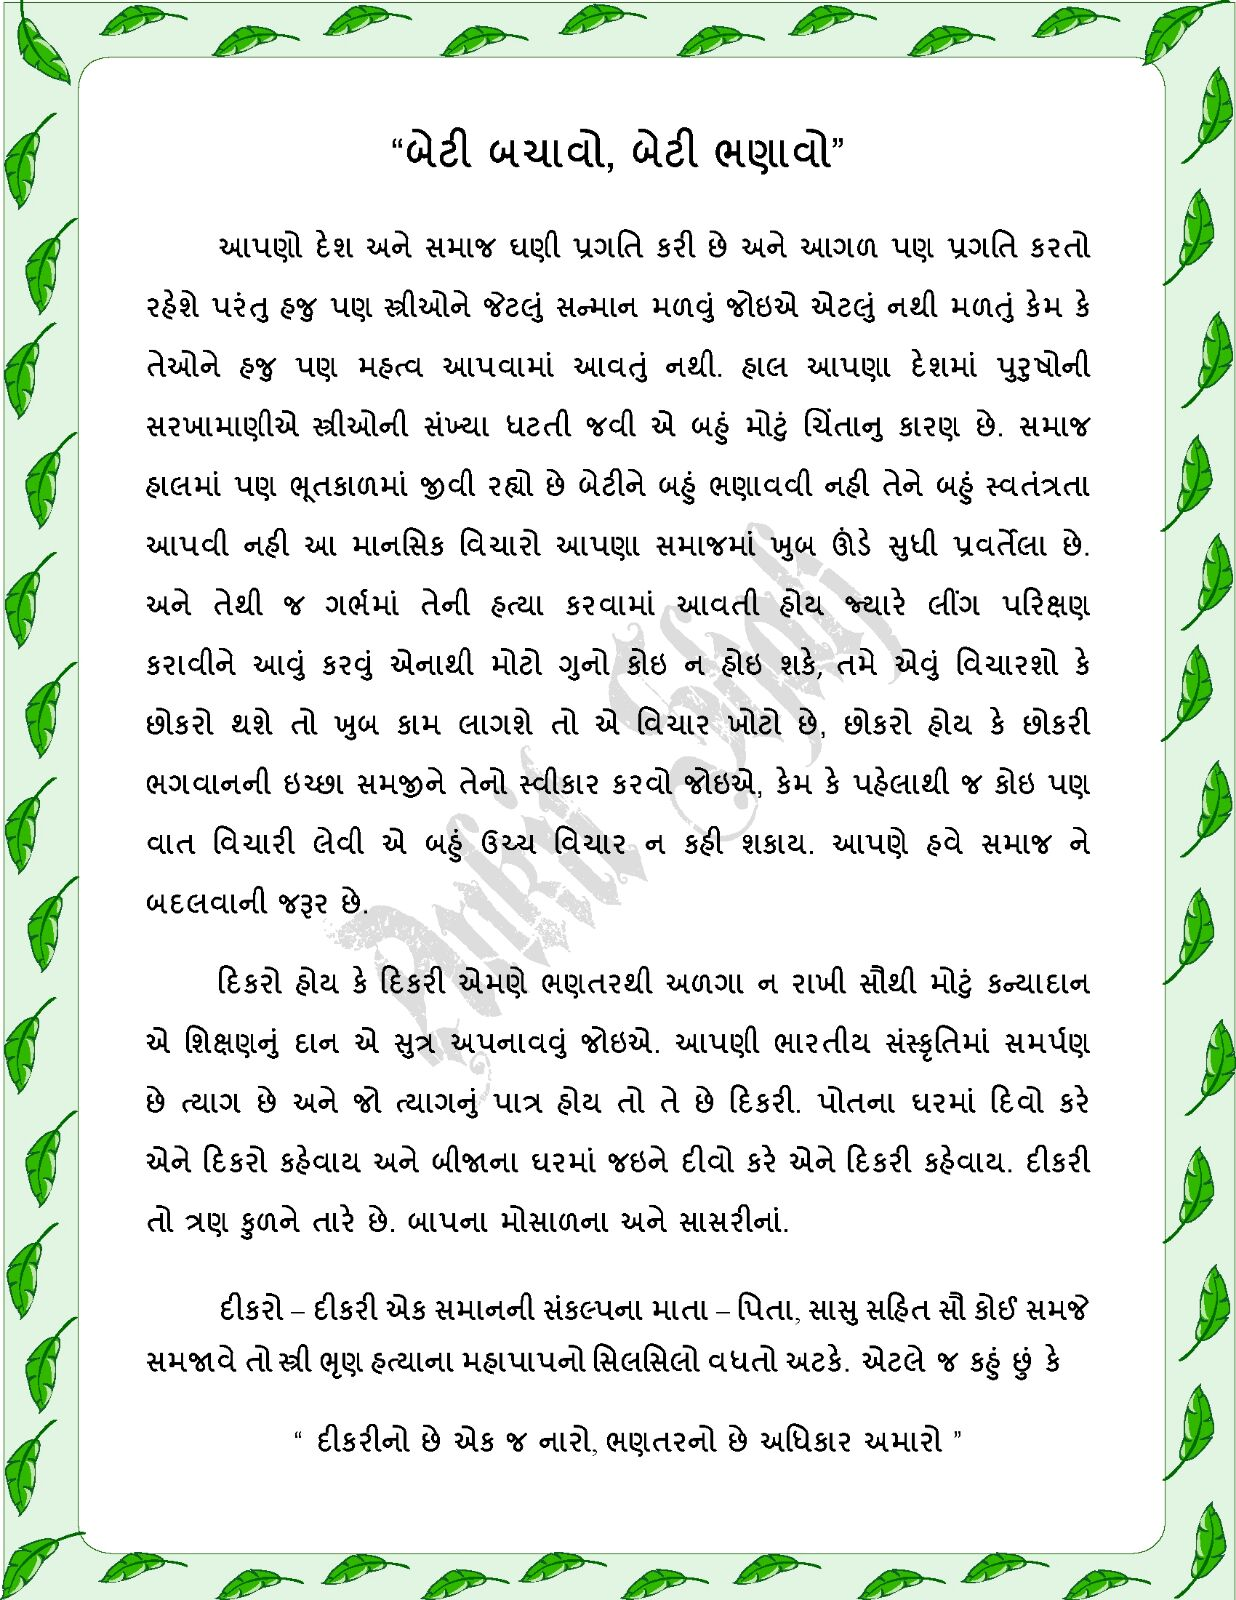 gujarati essay writing Short essay on democracy writing introductions for essays bth sipho sepamla to whom it may concern poem analysis essays essay john stuart mill on liberty.